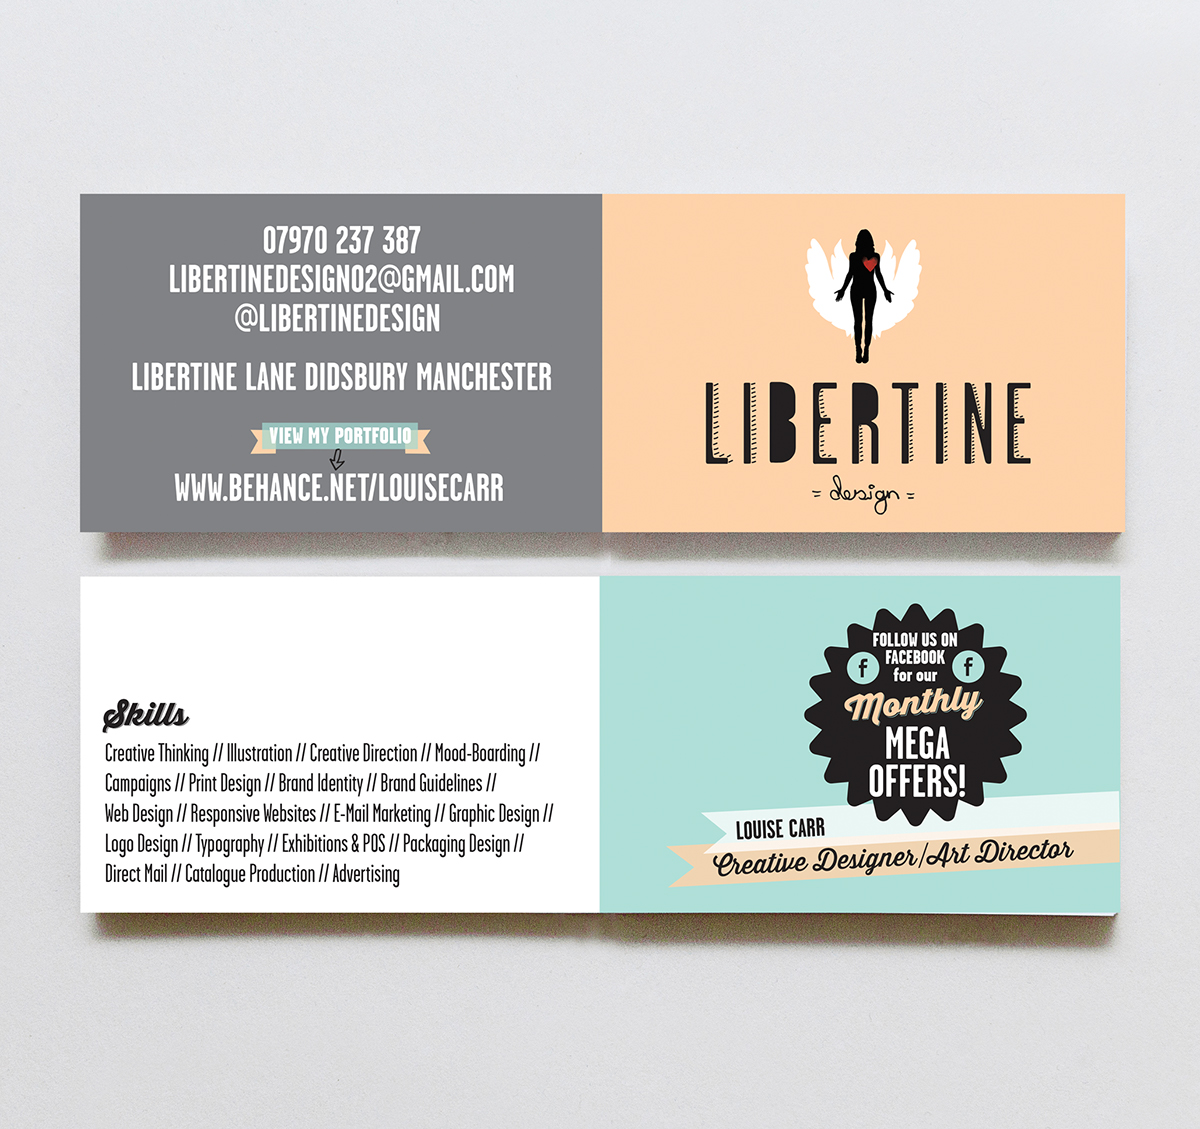 Libertine Design Business Card on Behance